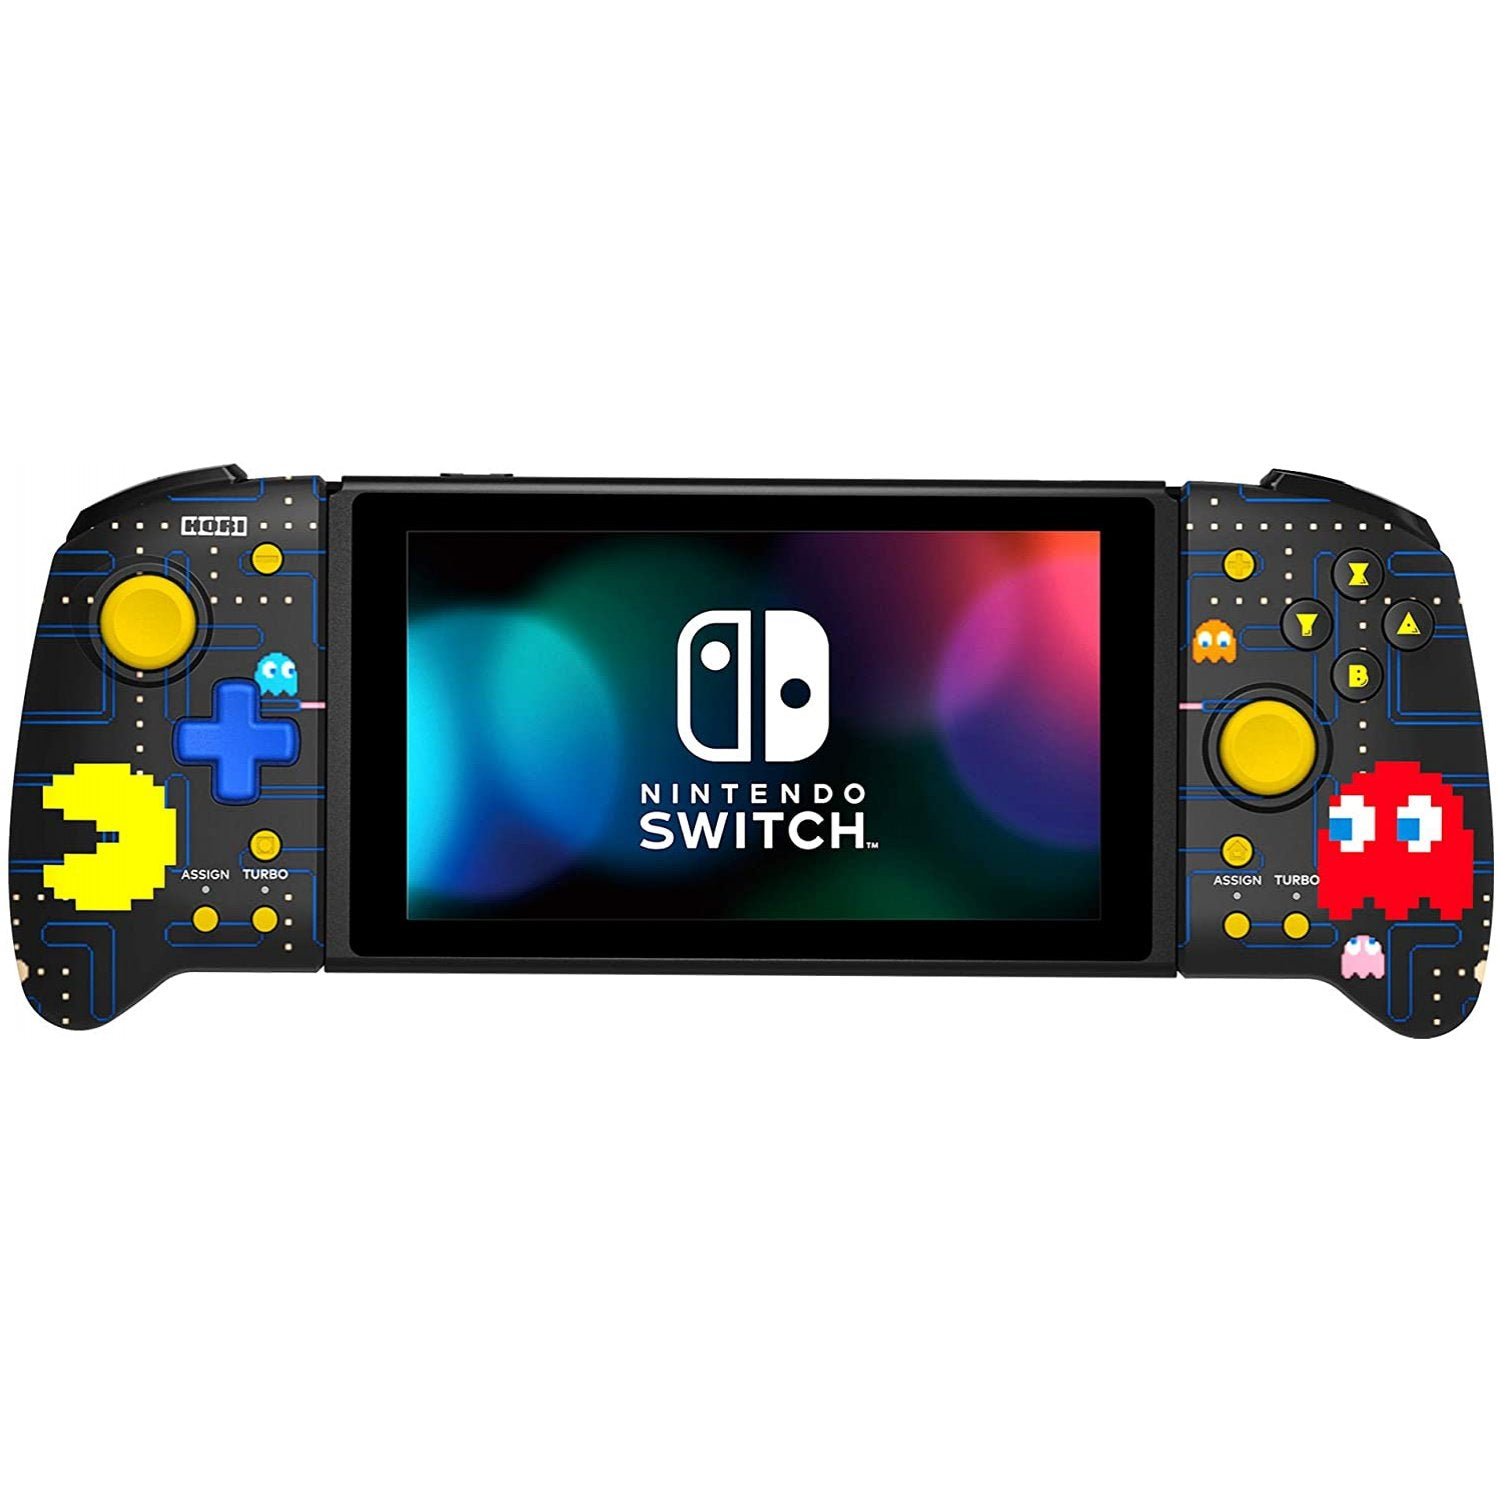 NSW-302A HORI Split Pad Pro (PAC-MAN Edition)